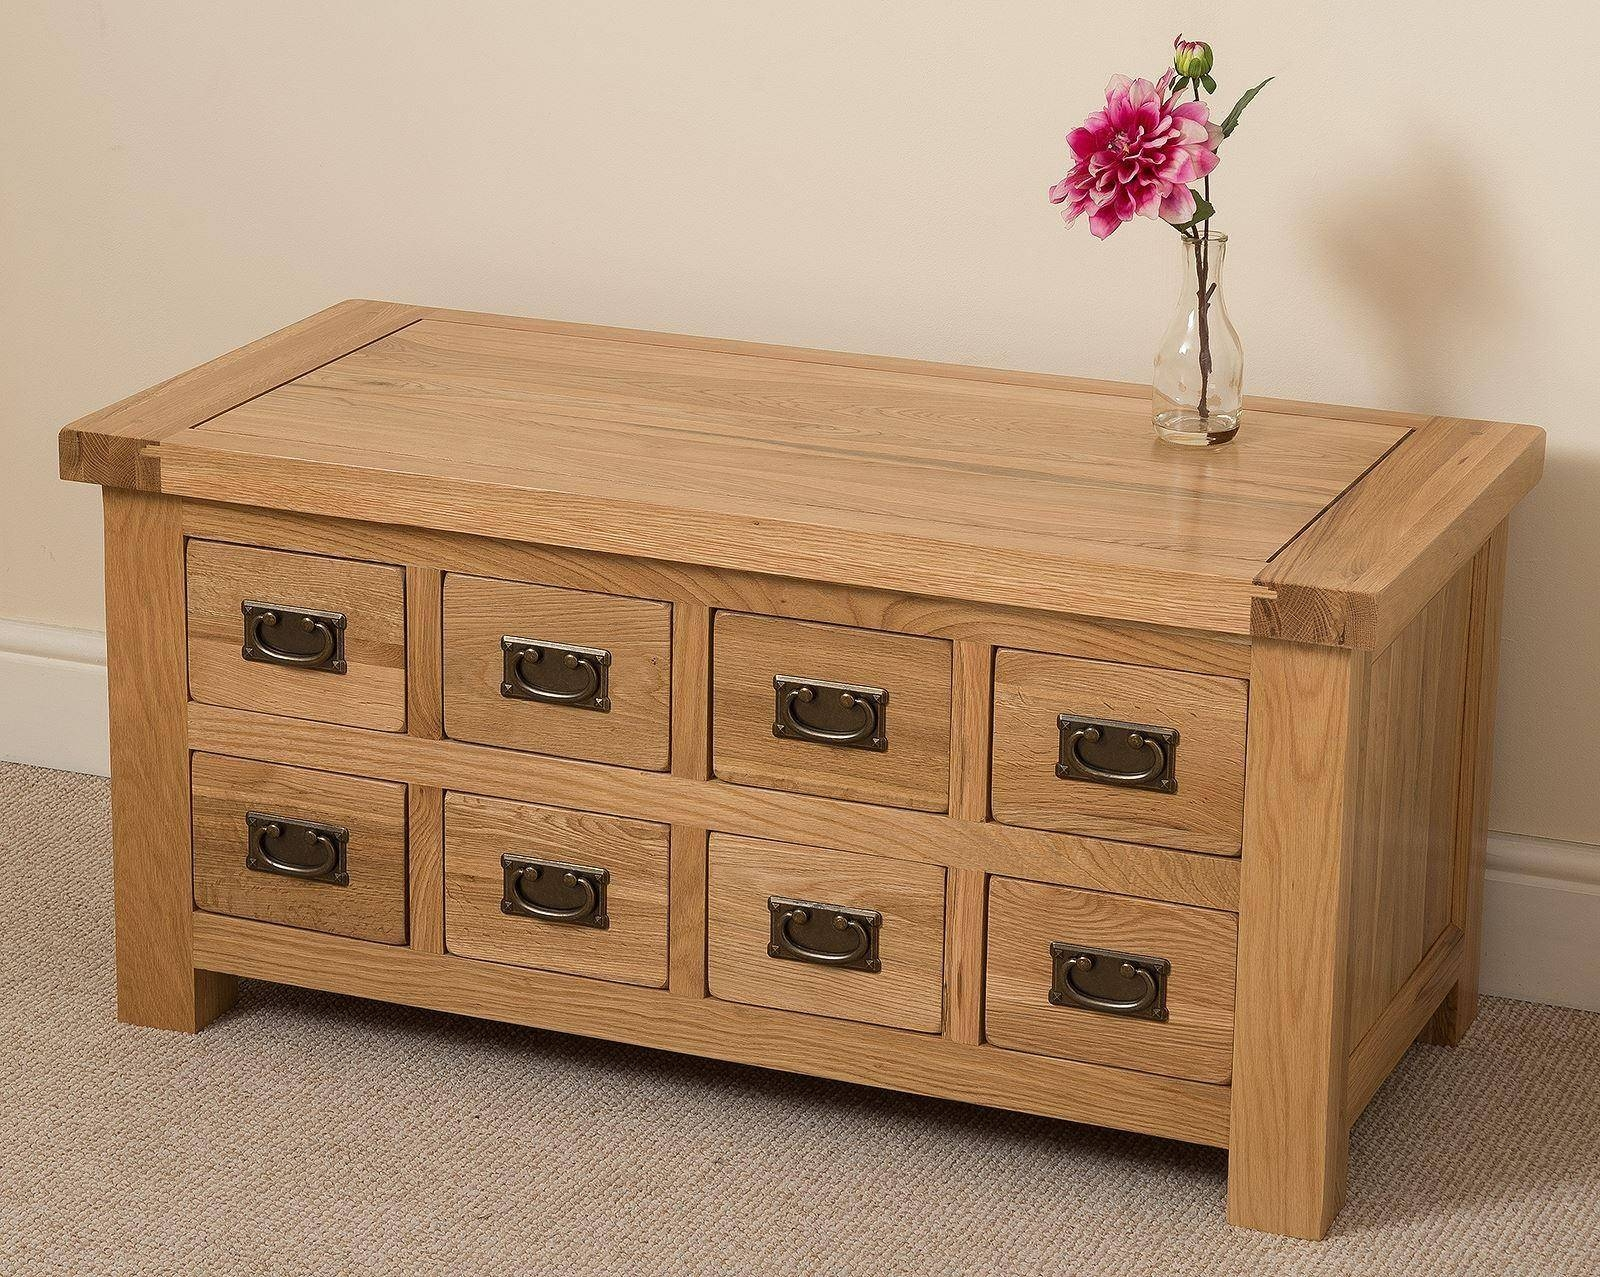 Cottage Oak Storage Coffee Table | Free Uk Delivery intended for Oak Storage Coffee Tables (Image 5 of 15)